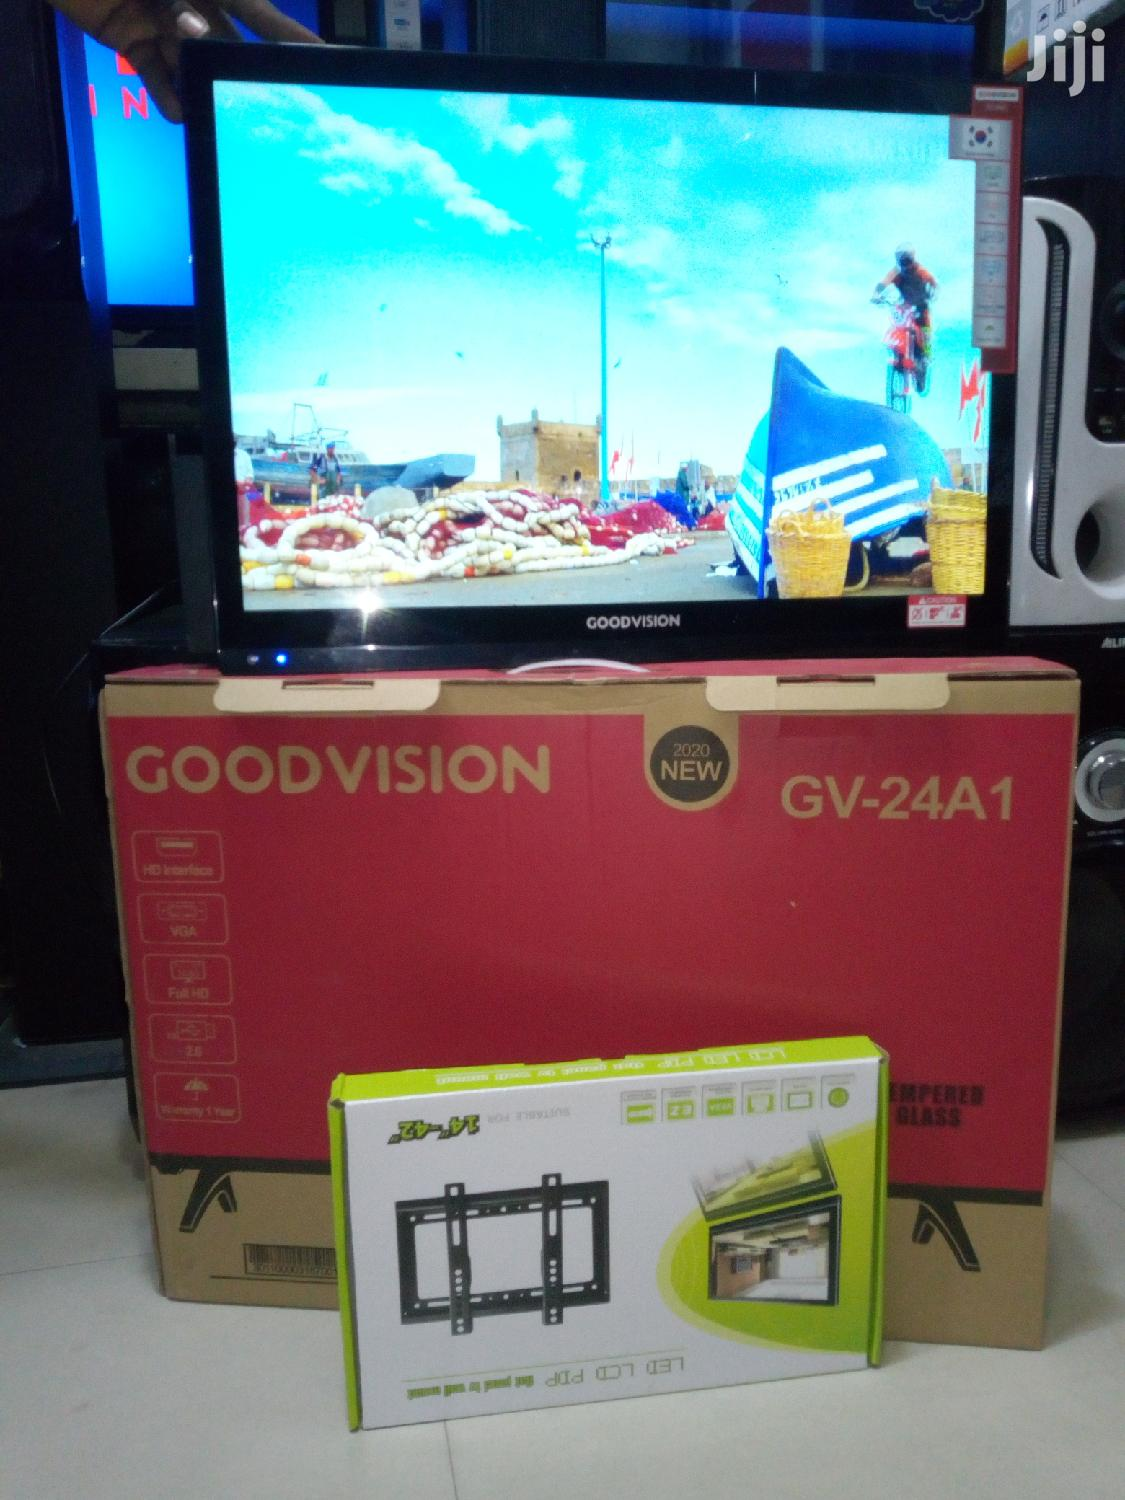 Good Vision LED TV Double Glass-Gv-24a1 | TV & DVD Equipment for sale in Ilala, Dar es Salaam, Tanzania